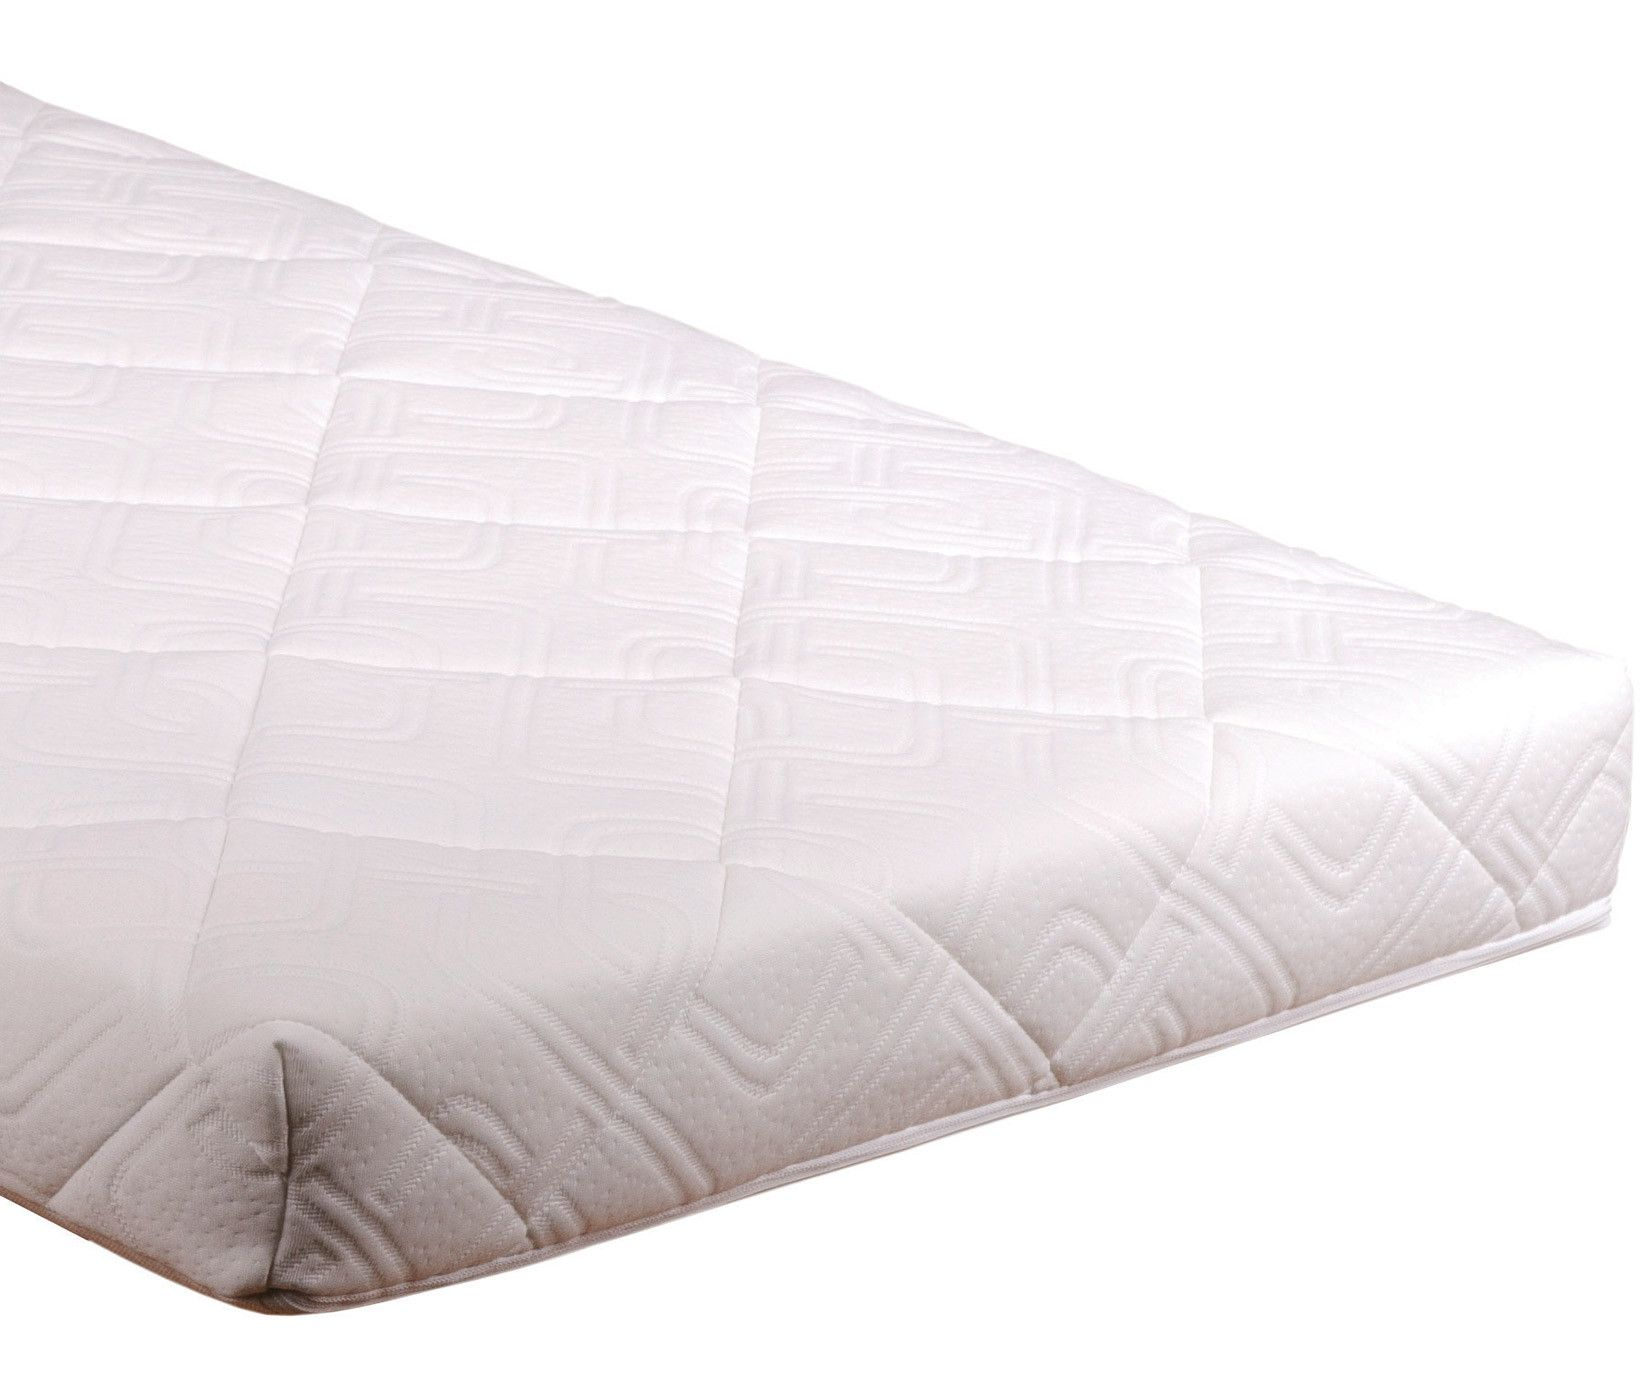 Porch swing cover white mattress cover outdoor bed twin Etsy